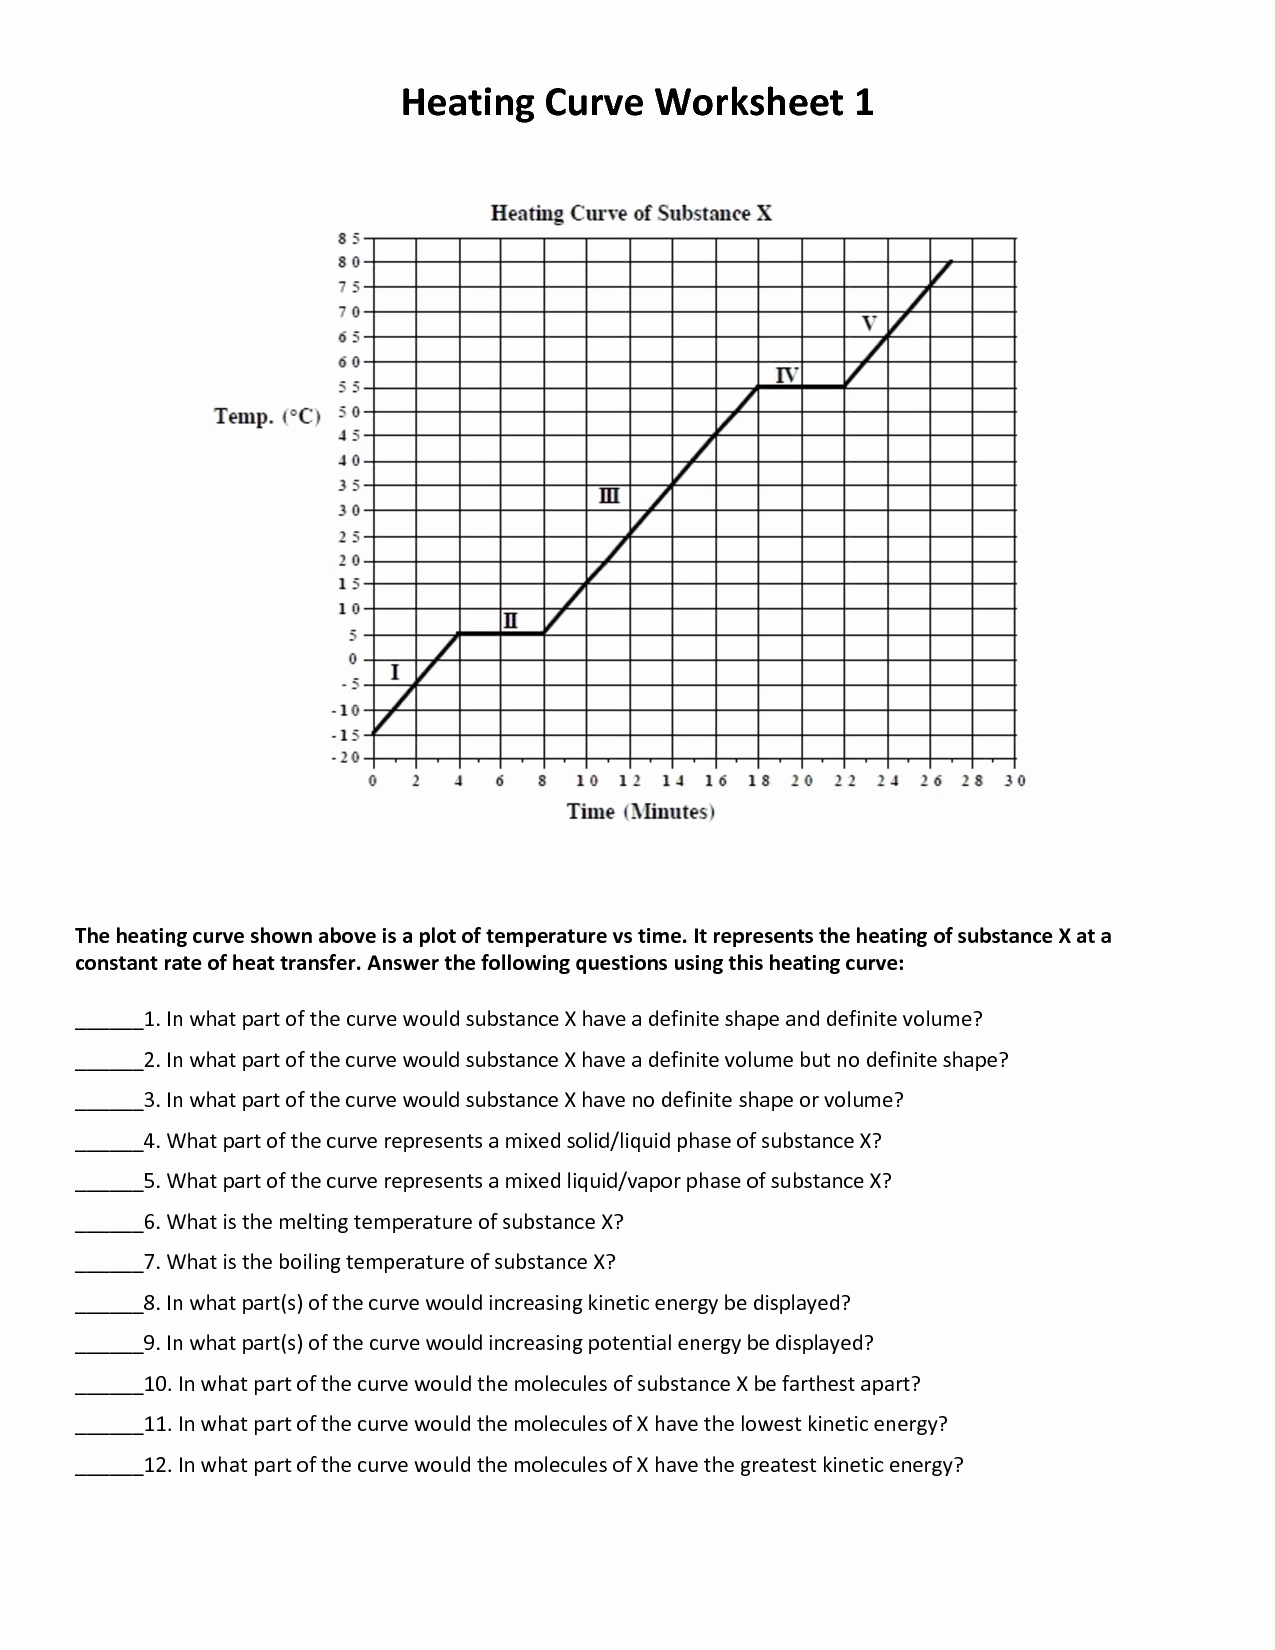 Heating and Cooling Curve Worksheet Luxury 1st Quarter Robert E Lee Chemistry